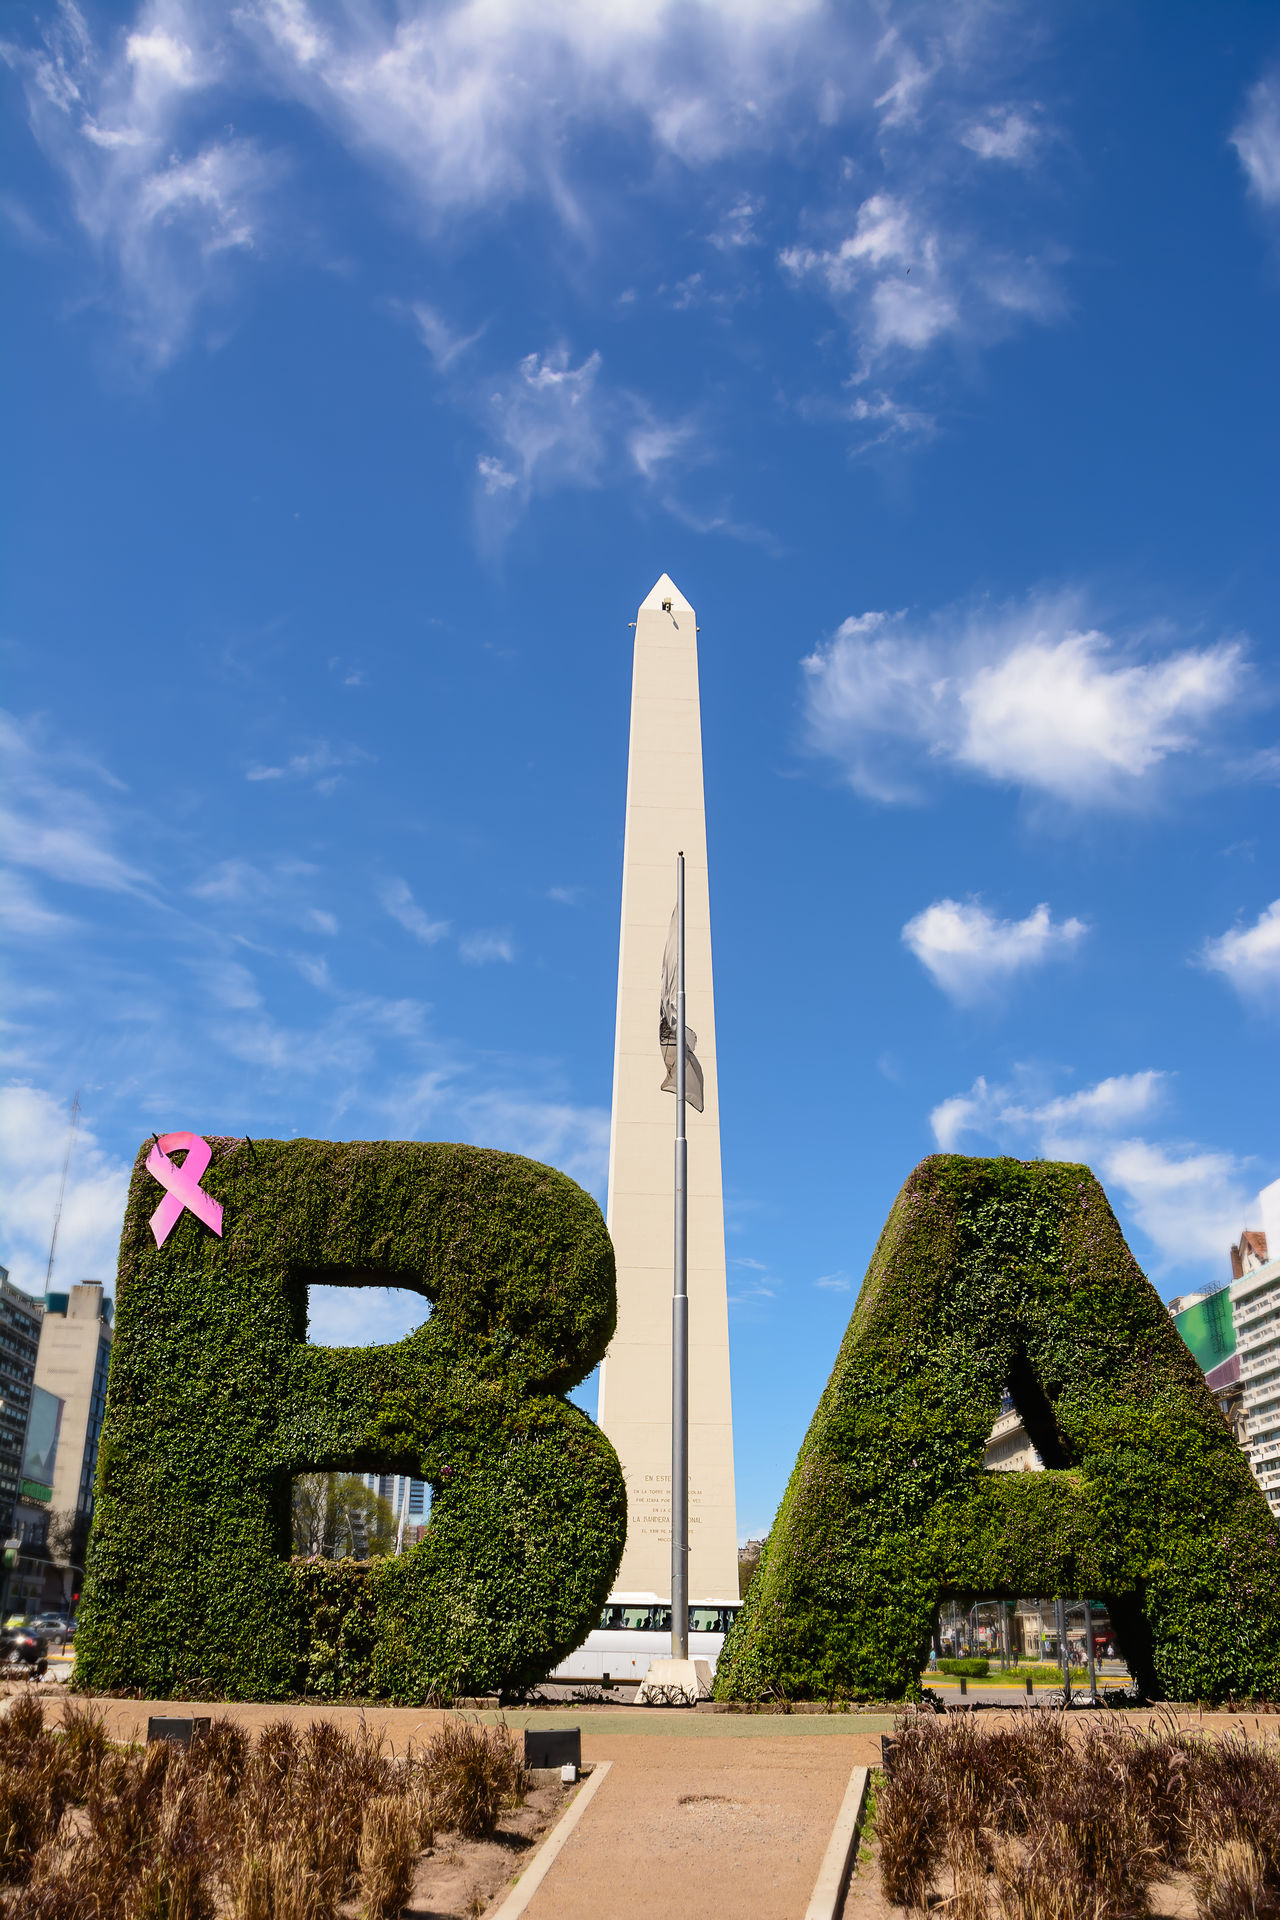 America Argentina Avenue Ba Blue Buenos Aires Buildings Capital City Cityscape Ciudad Autónoma De Buenos Aires Day Hedge Landmark Latin Monolite Monument Obelisc Obelisk Sky Street Text Tourism Urban Written